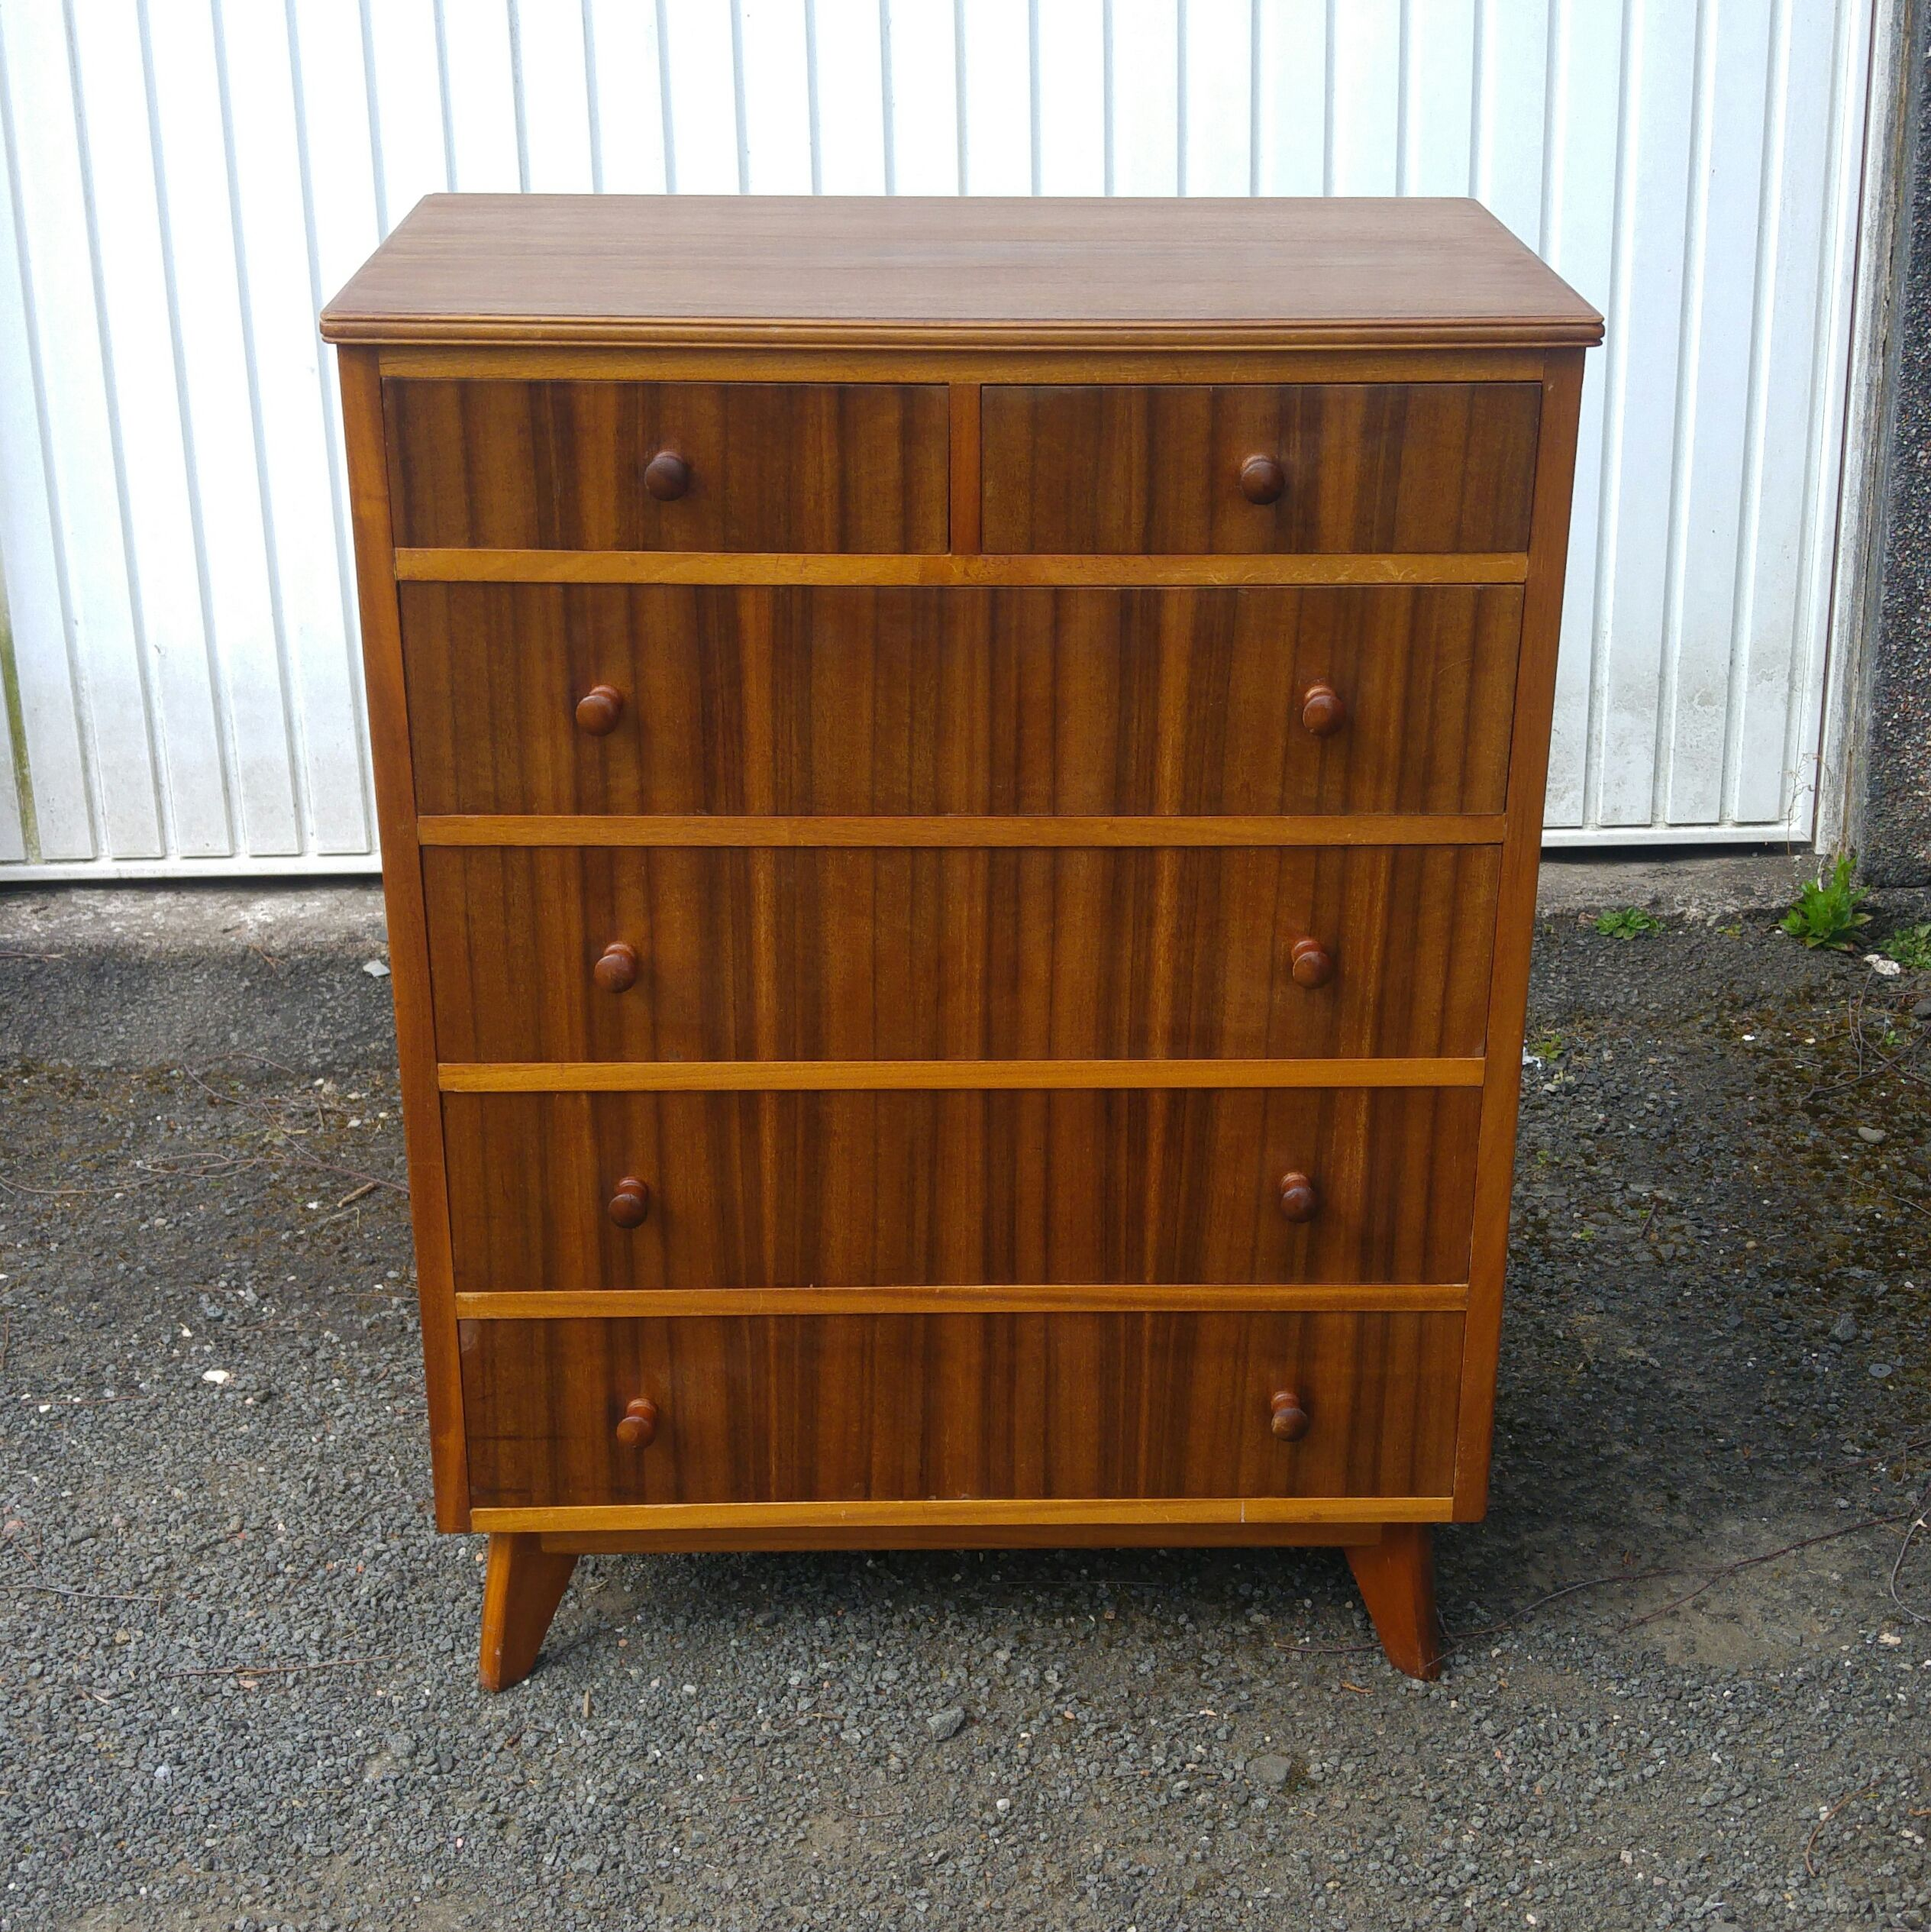 Cumbrae Range Large Chest Of Drawers In Walnut And Sycamore